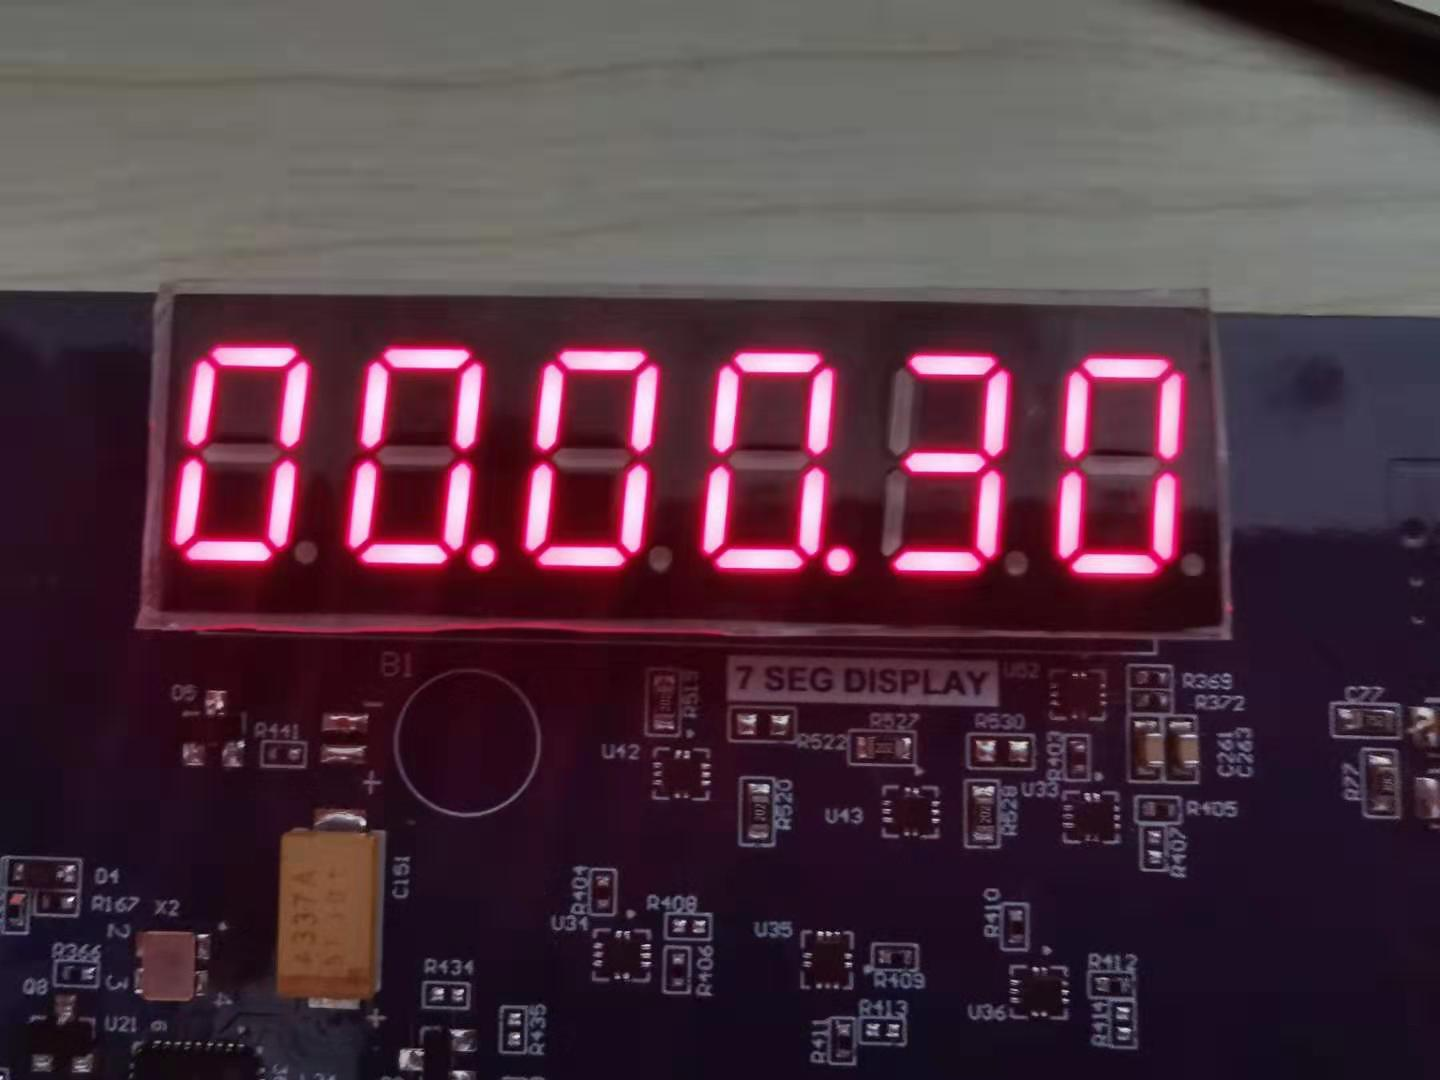 Segment display experimental phenomenon